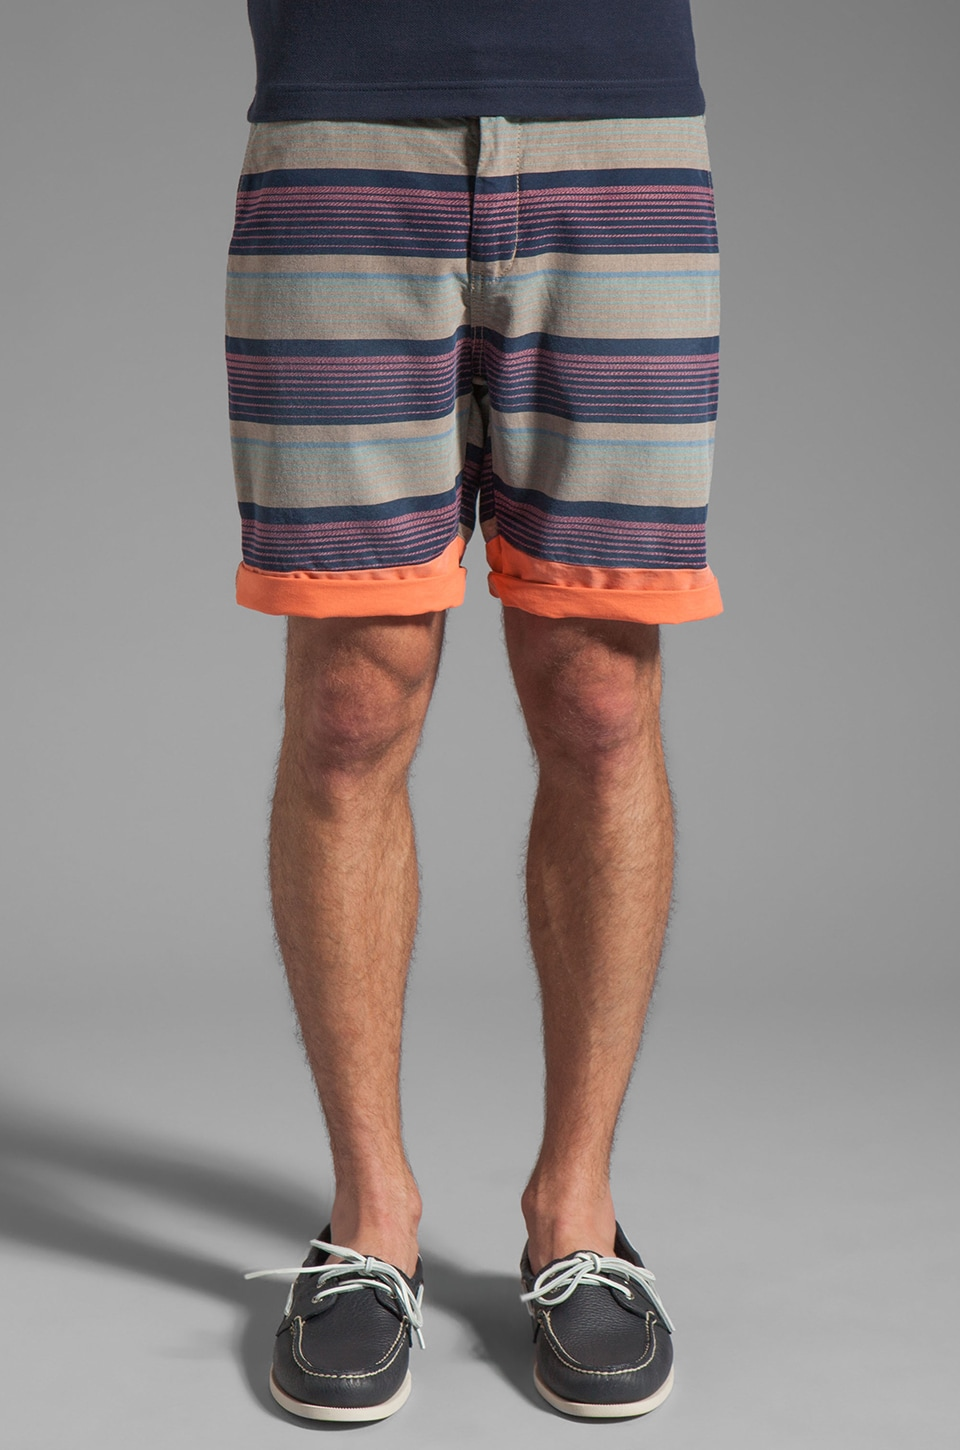 Scotch & Soda Patterned Stripe Short in Blue/Pink